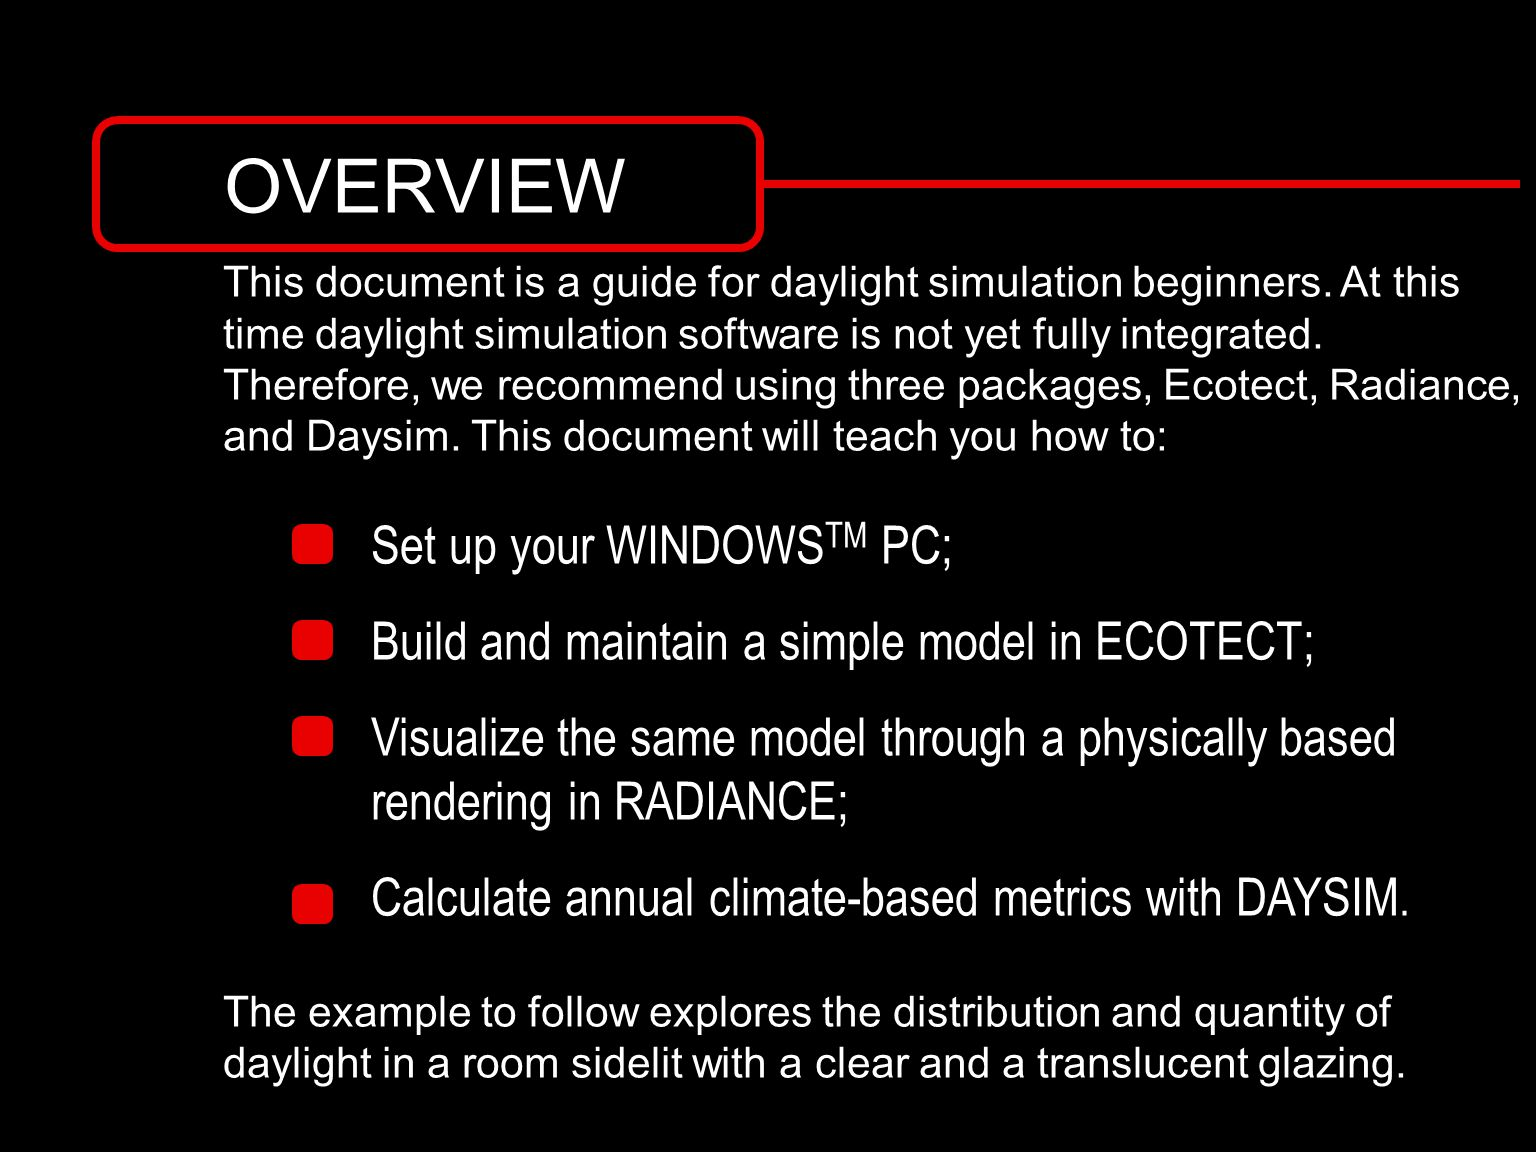 OVERVIEW This document is a guide for daylight simulation beginners.